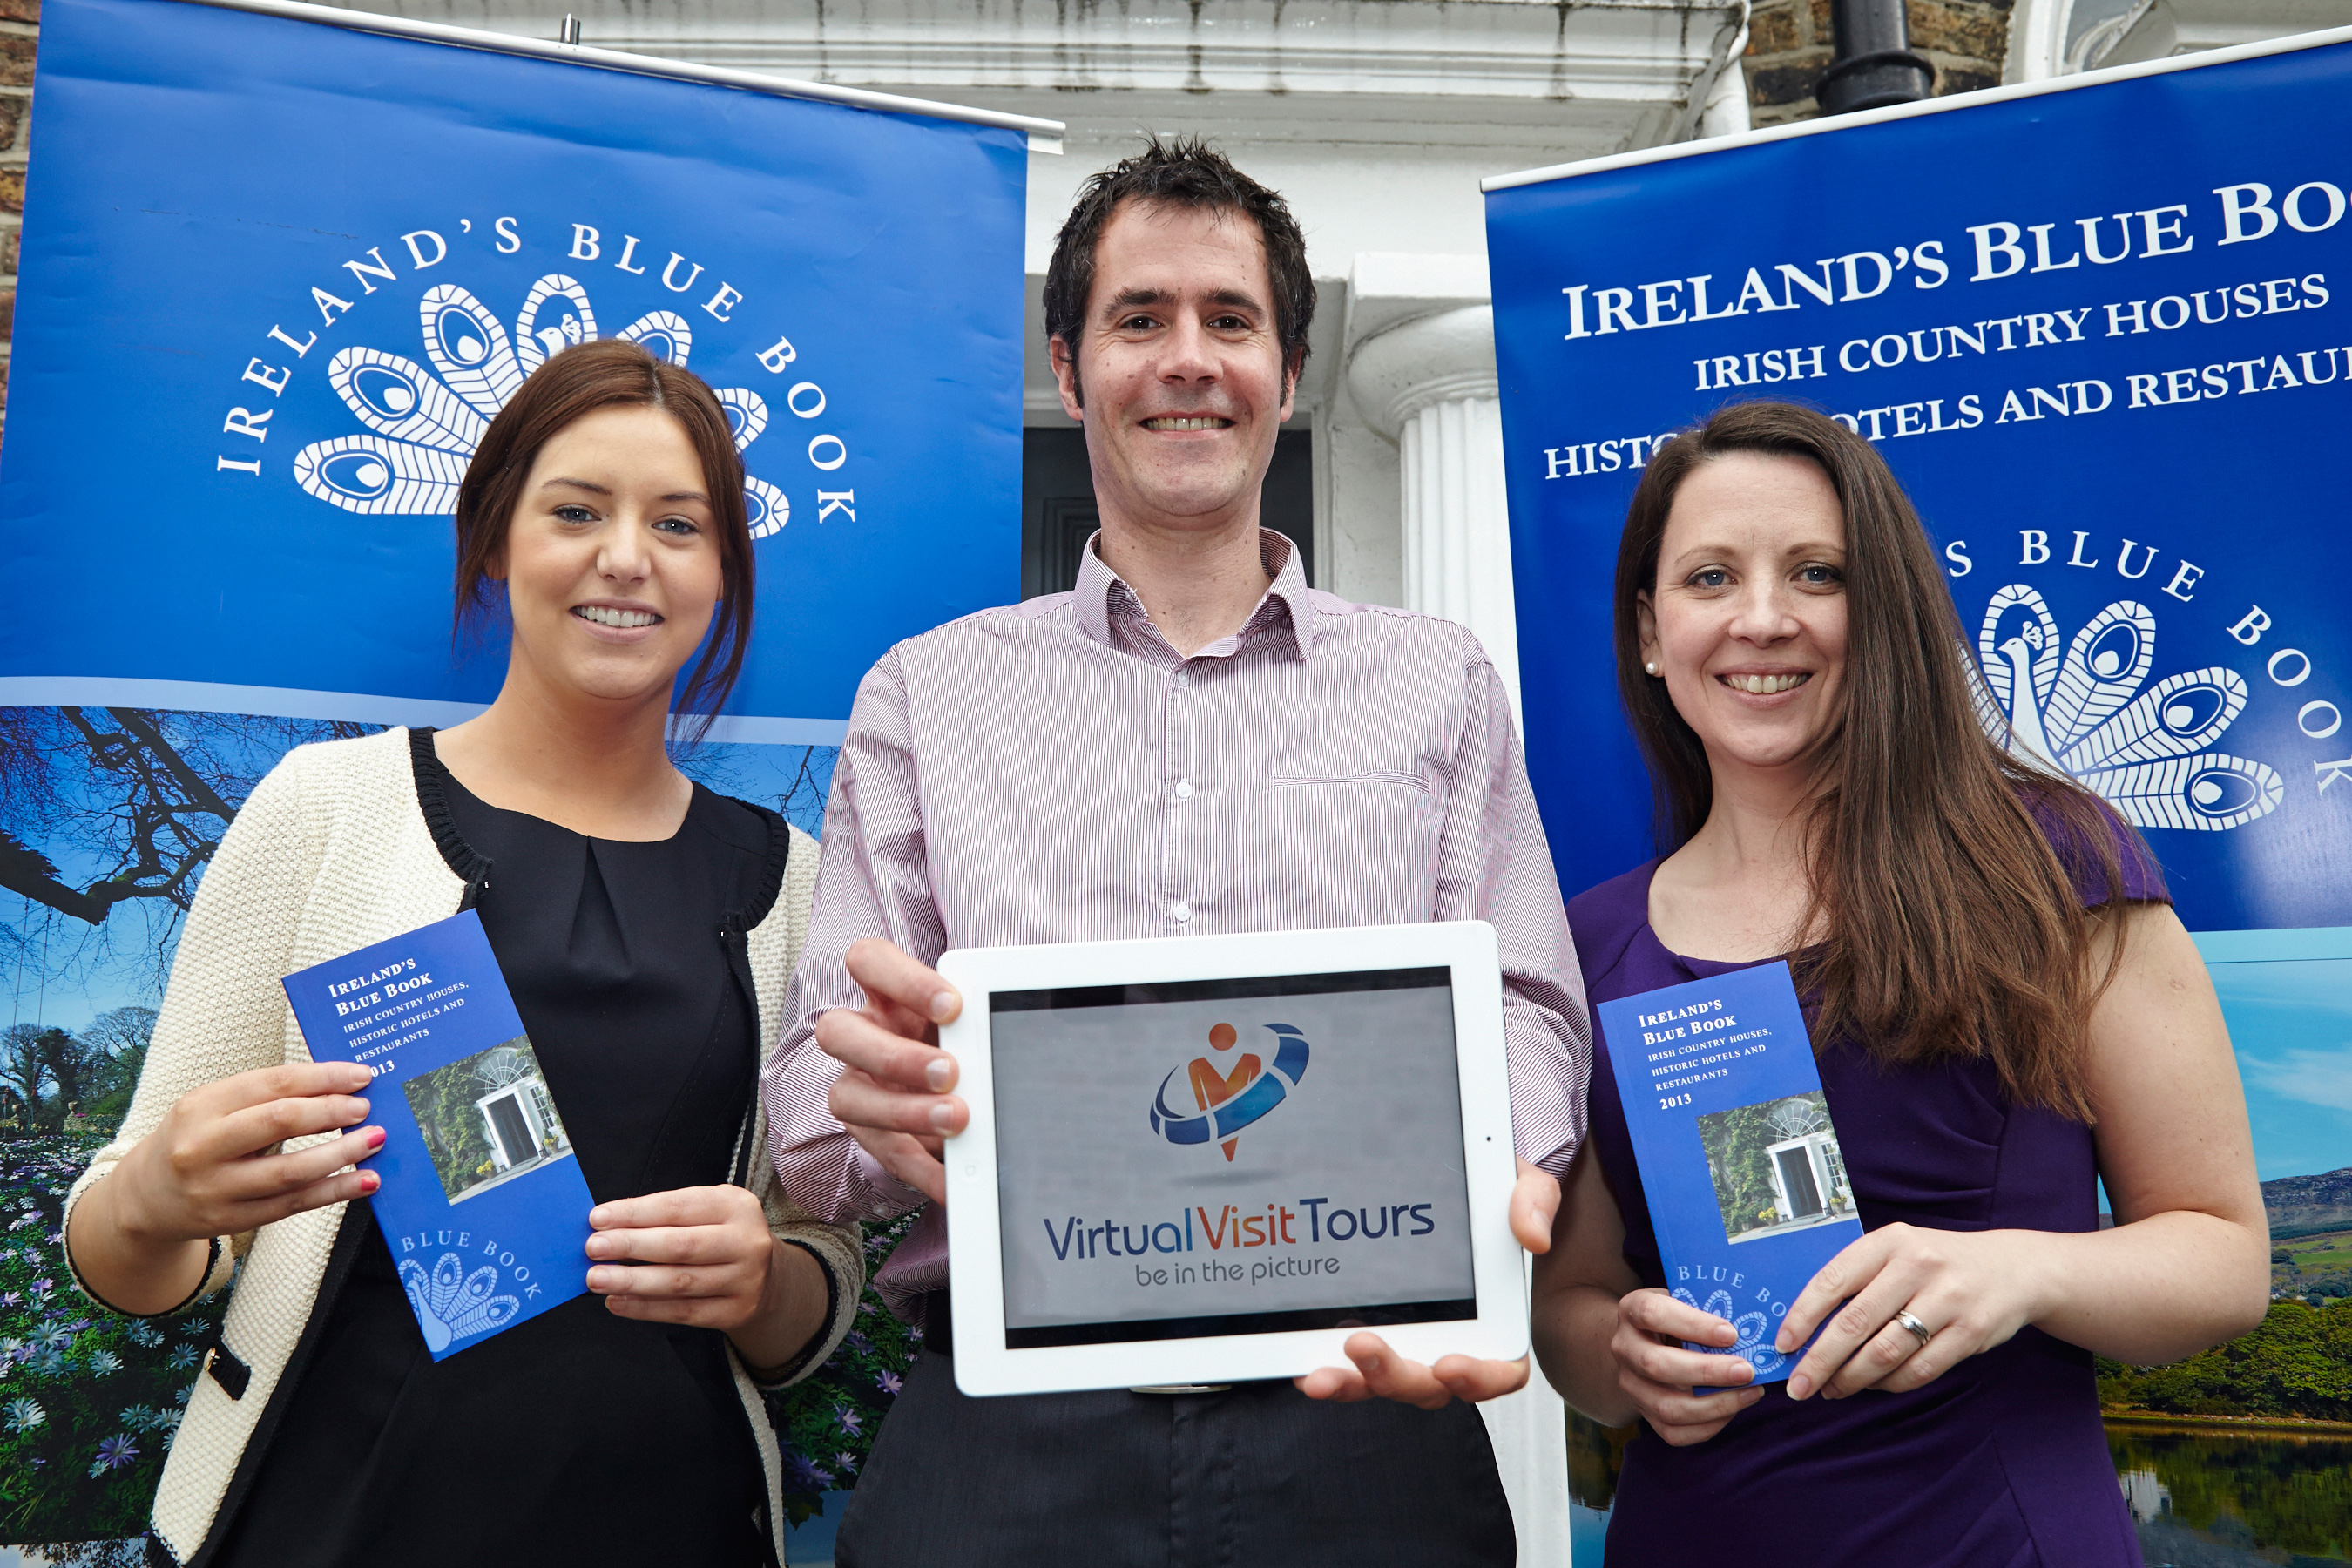 Ireland's Blue Book partners with Virtual Visit Tours